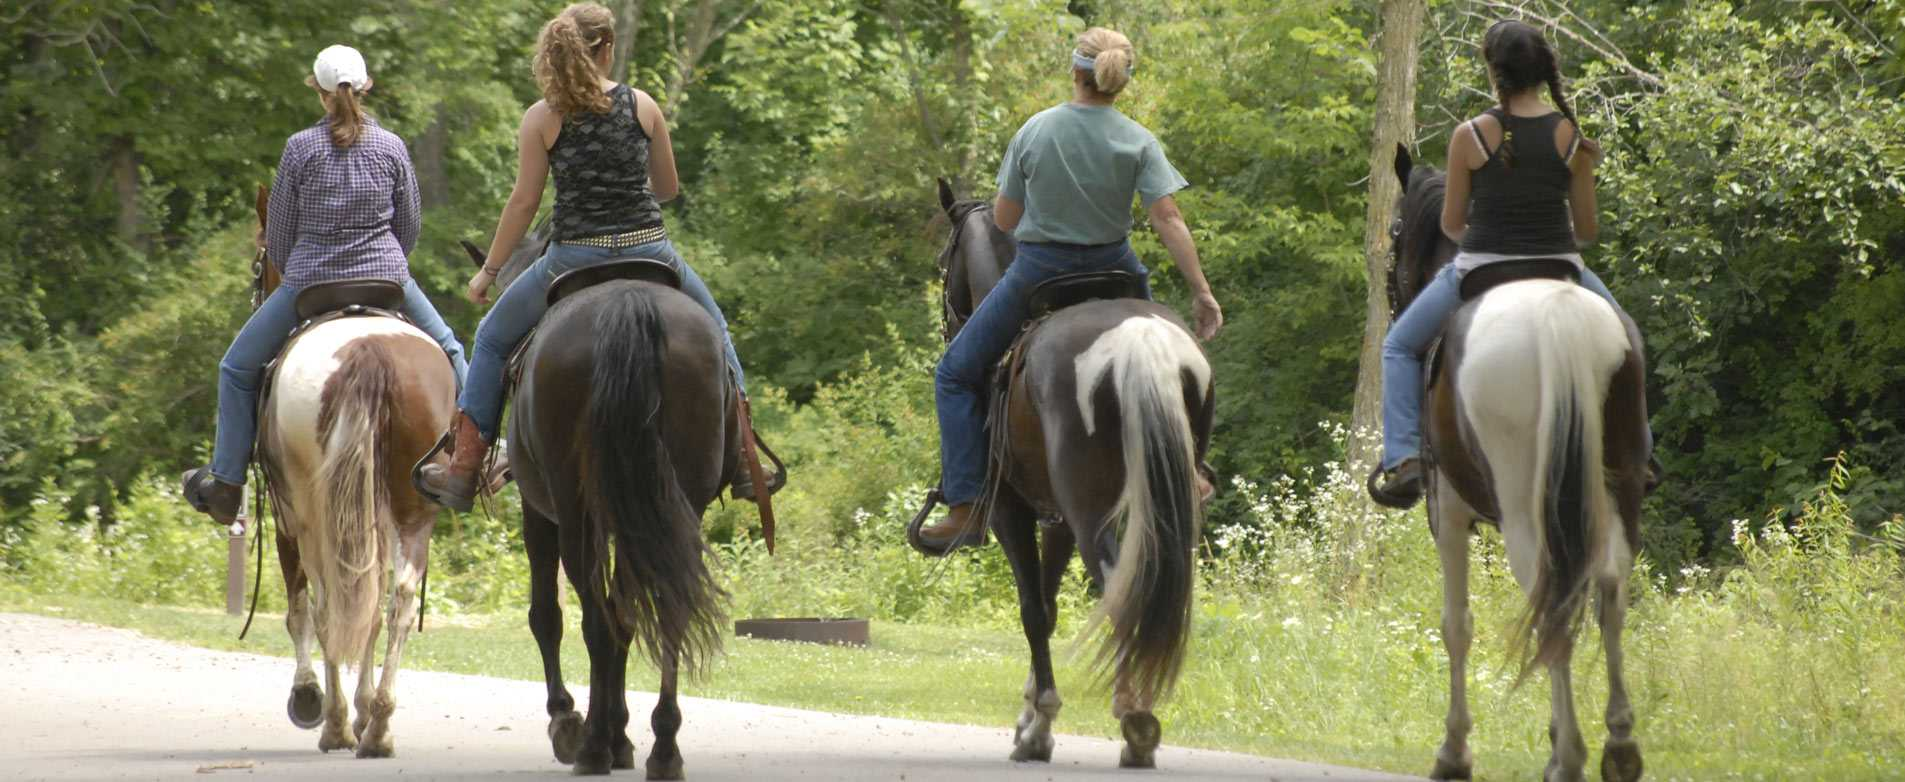 Horseback Riding at Wildcat Mountain State Park